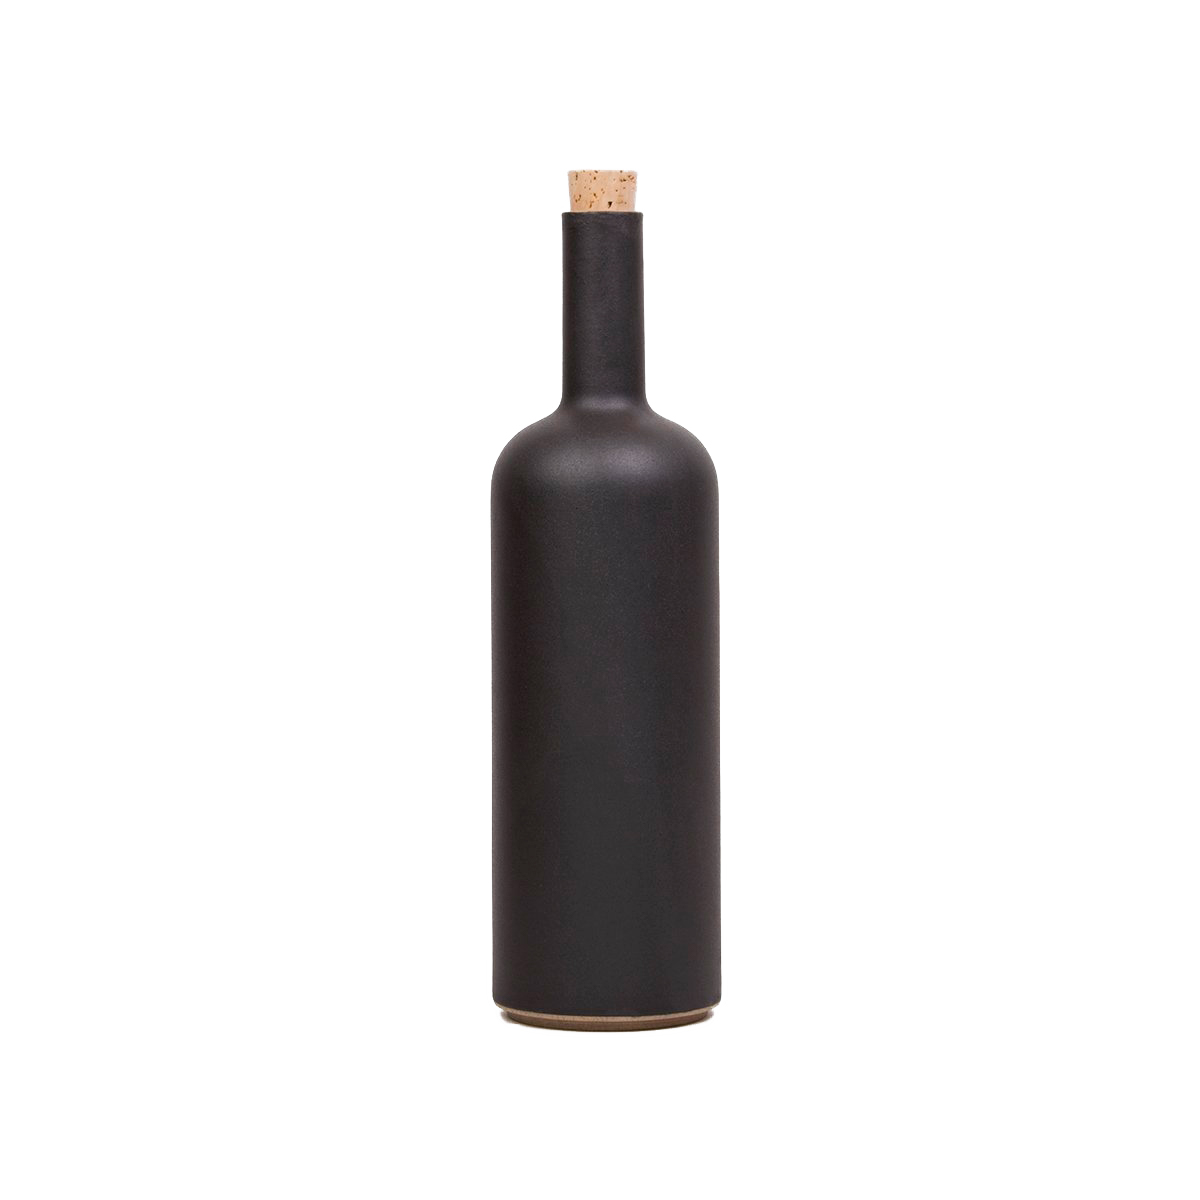 HPB029 Hasami Bottle Black